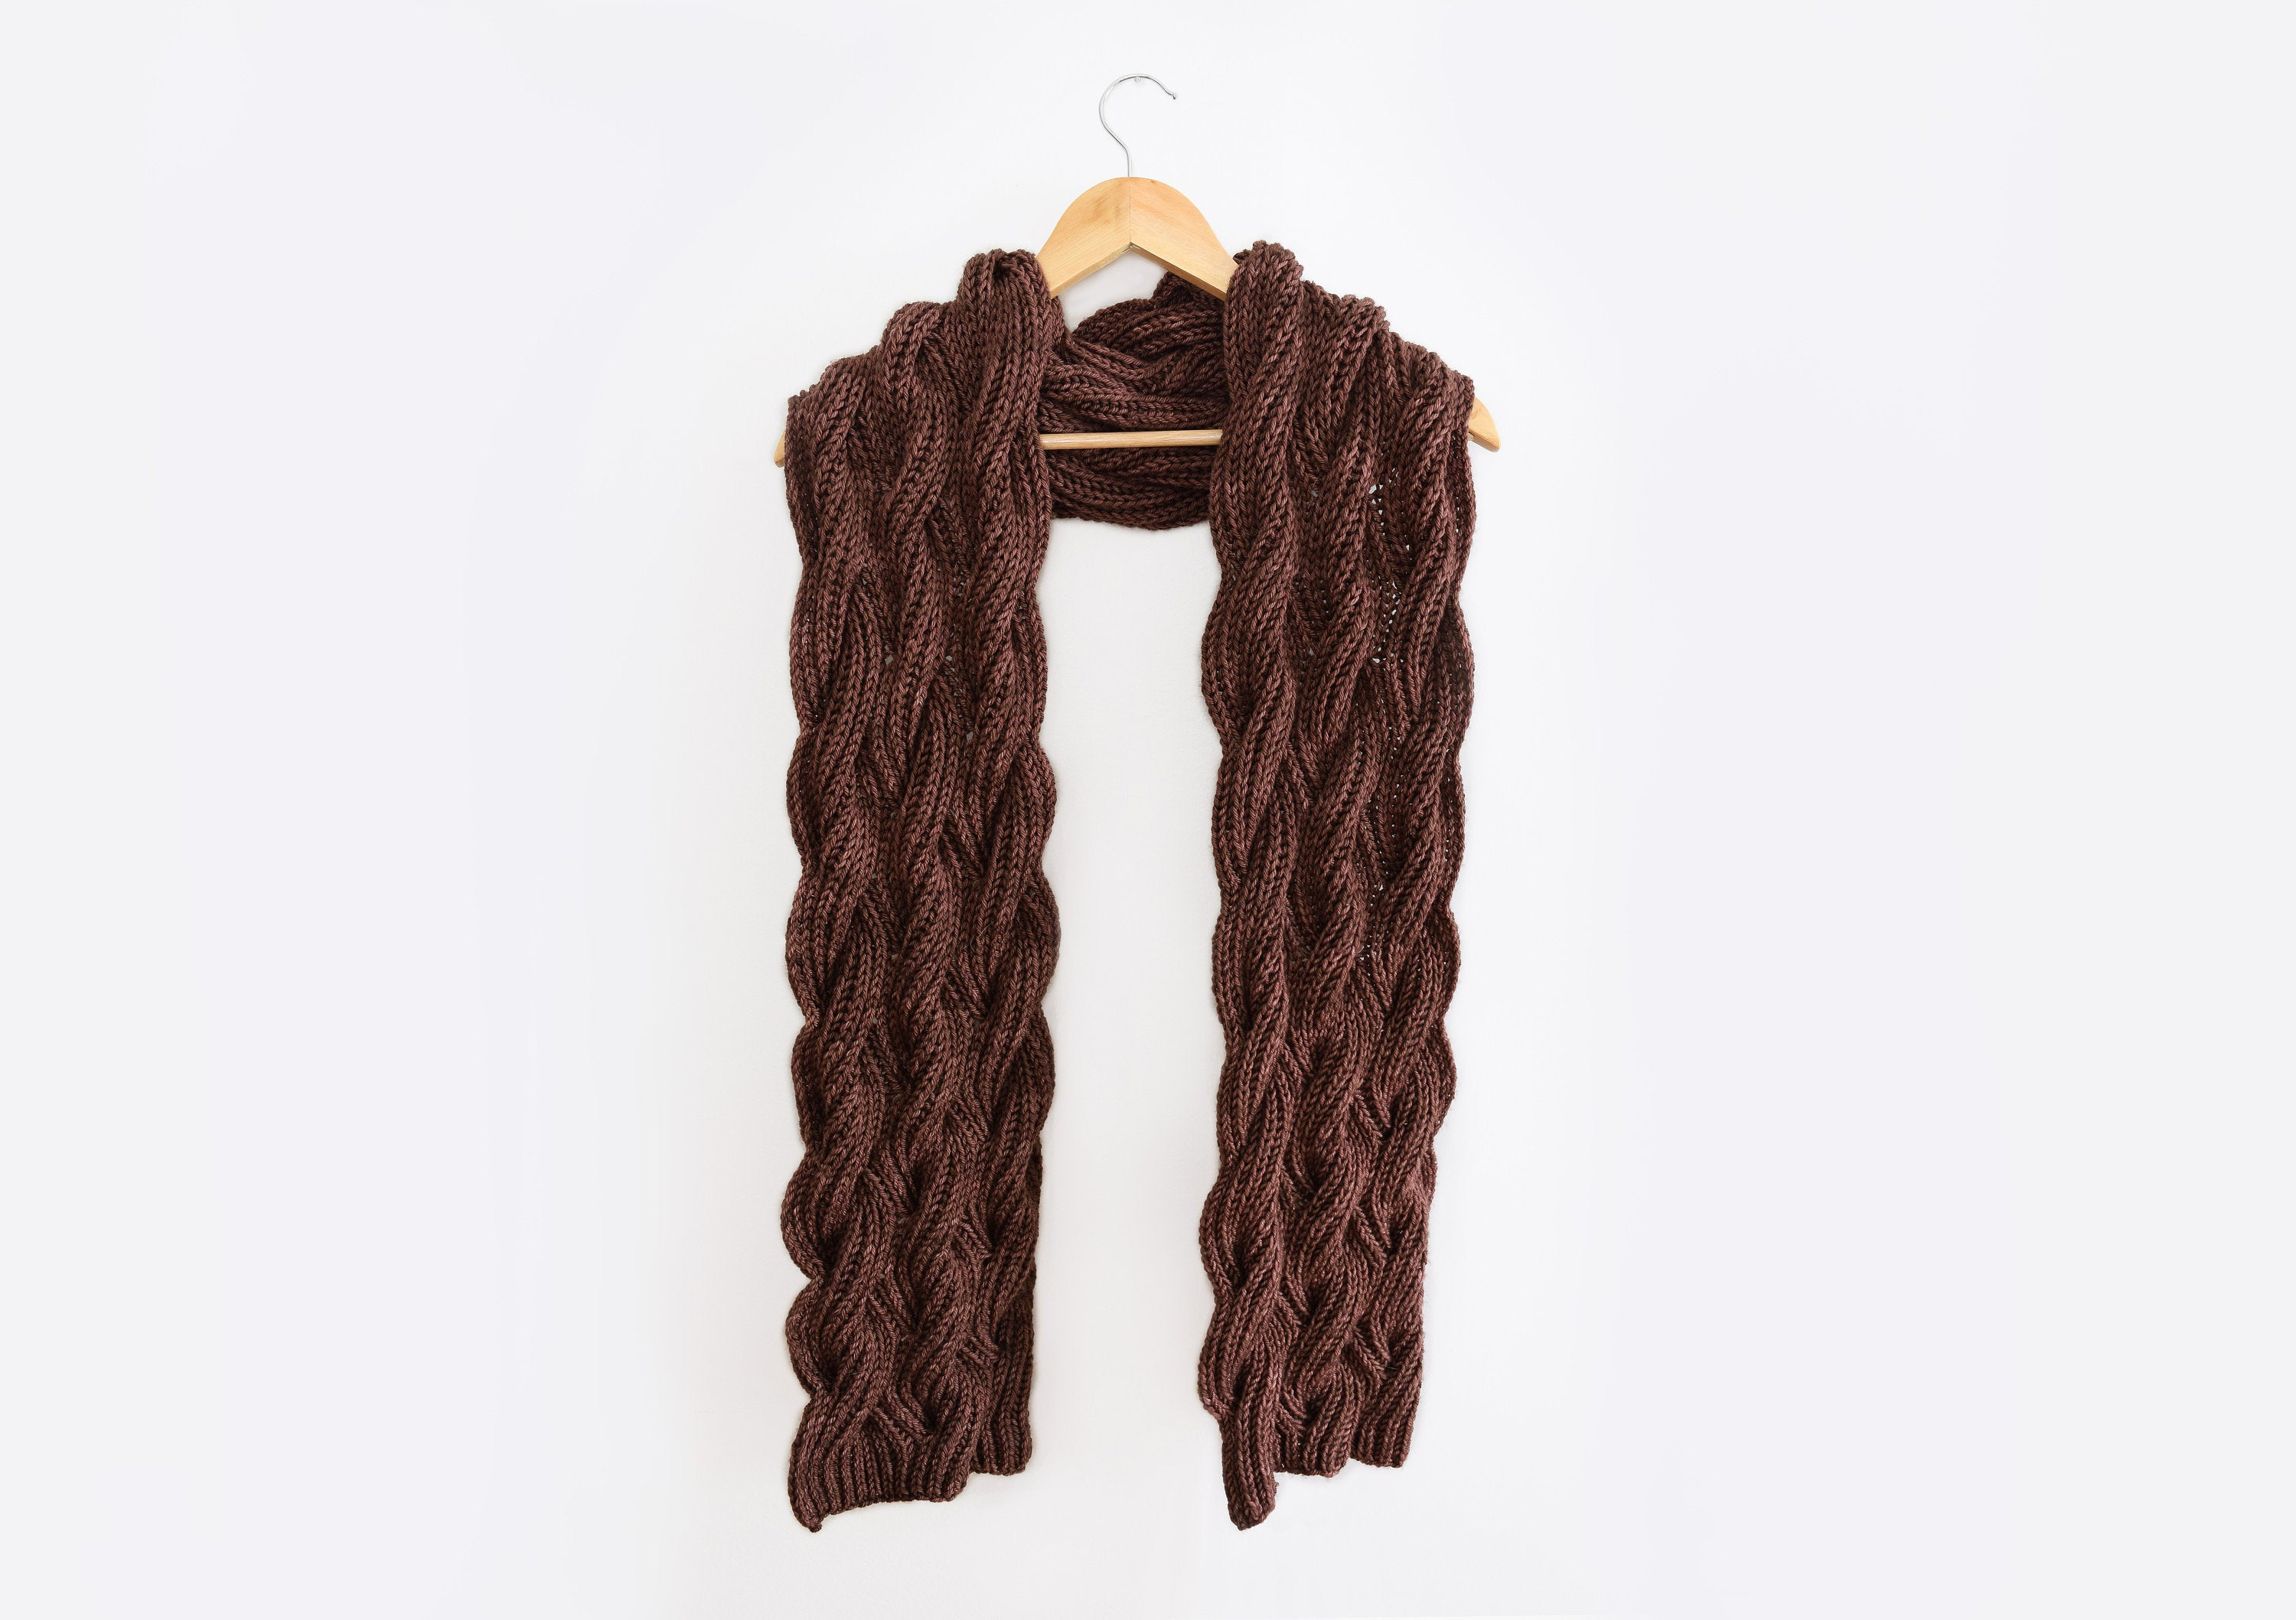 Cable Knitted Scarf Pattern Knitting Patterns Cabled Scarf Pattern Knit Scarf Pattern Cable Knit Rosewood Scarf Pattern Knitting Pattern Diy